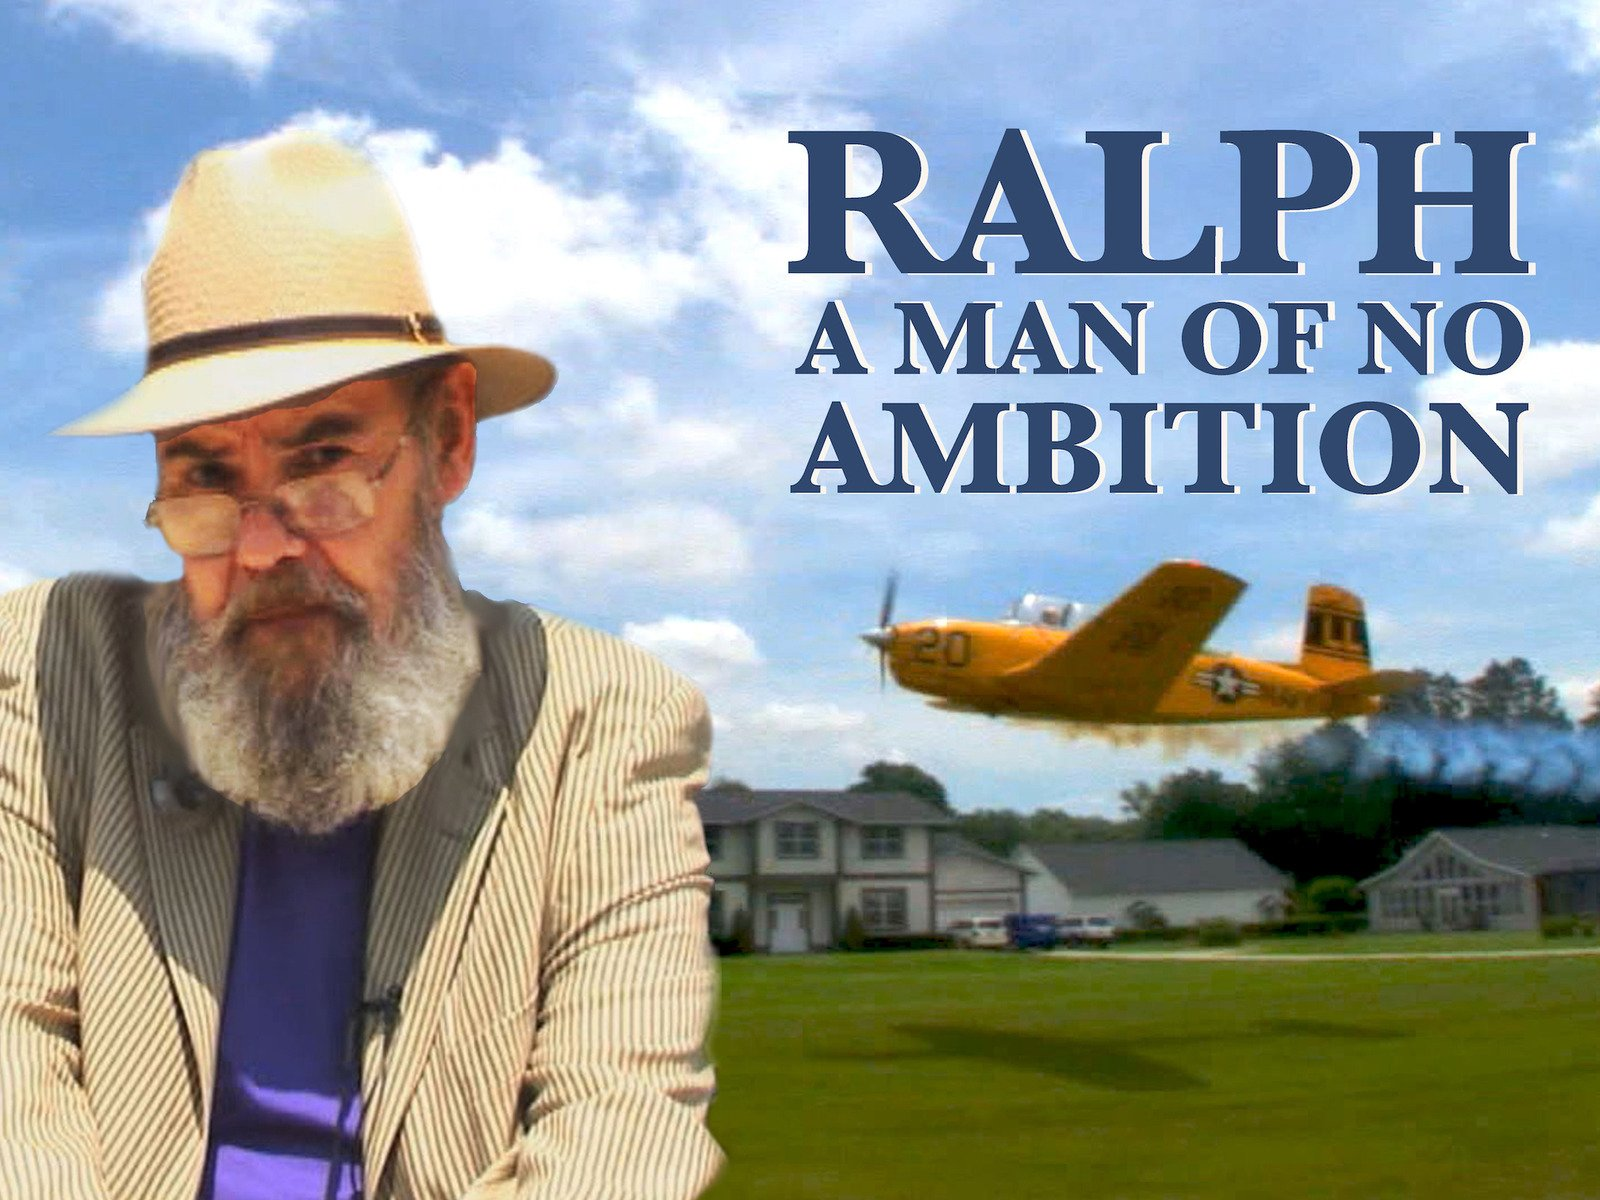 Ralph A Man Of No Ambition - Season 1